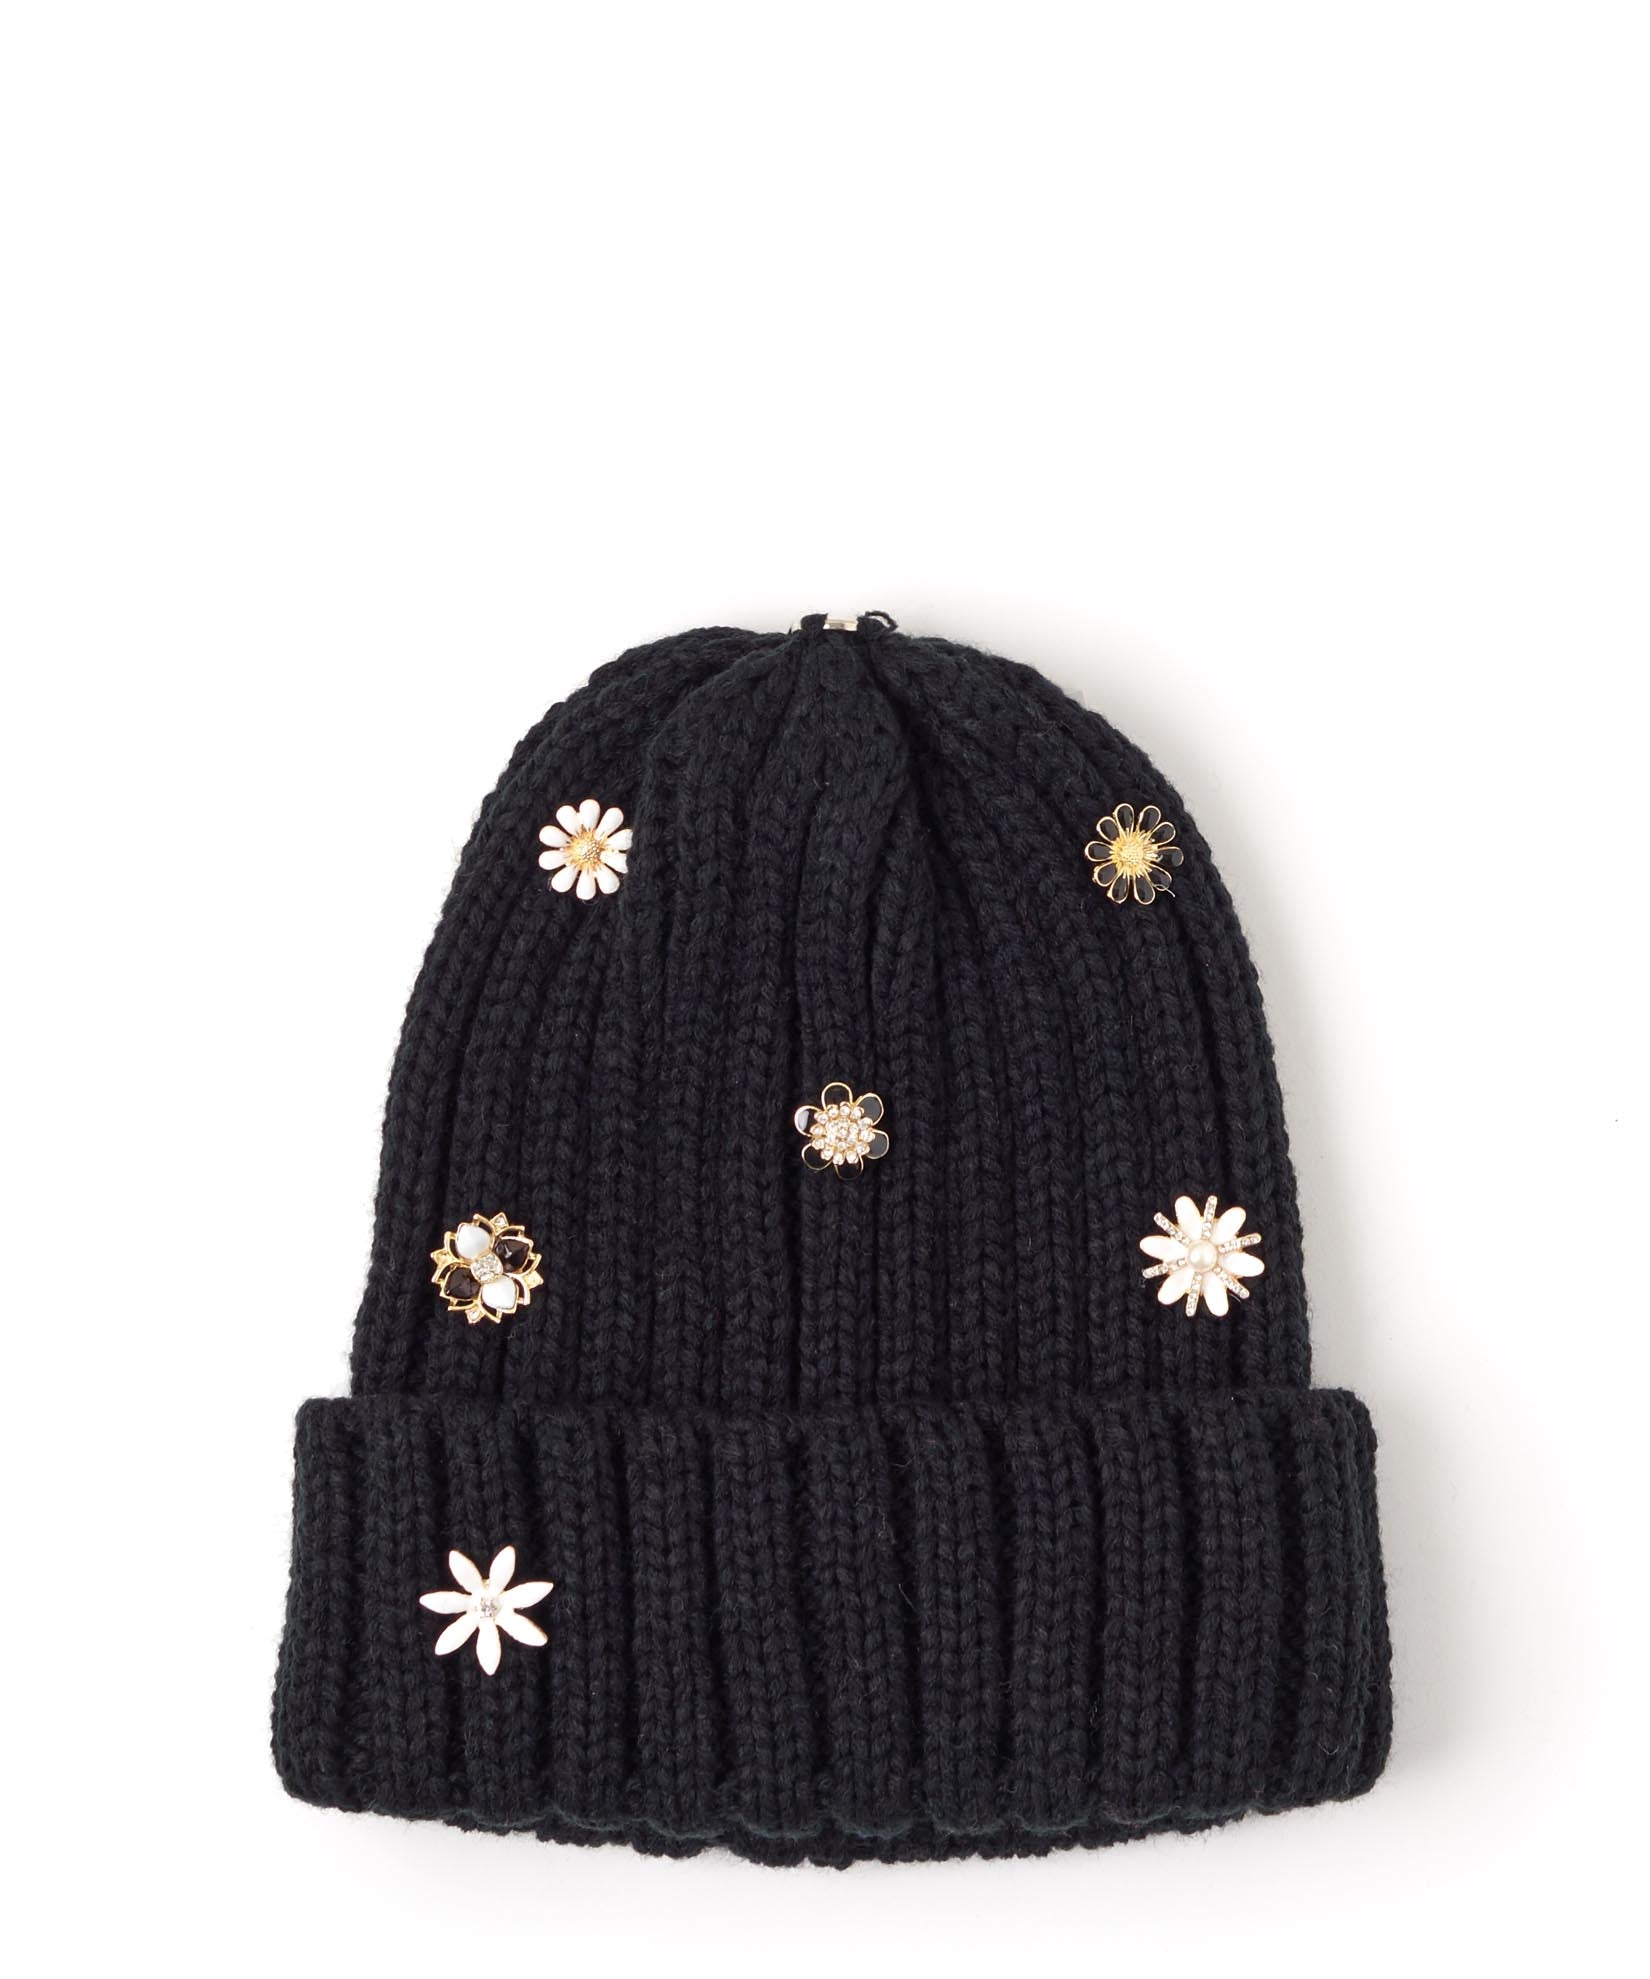 Black - Ribbed Knit Changeable Pom Beanie